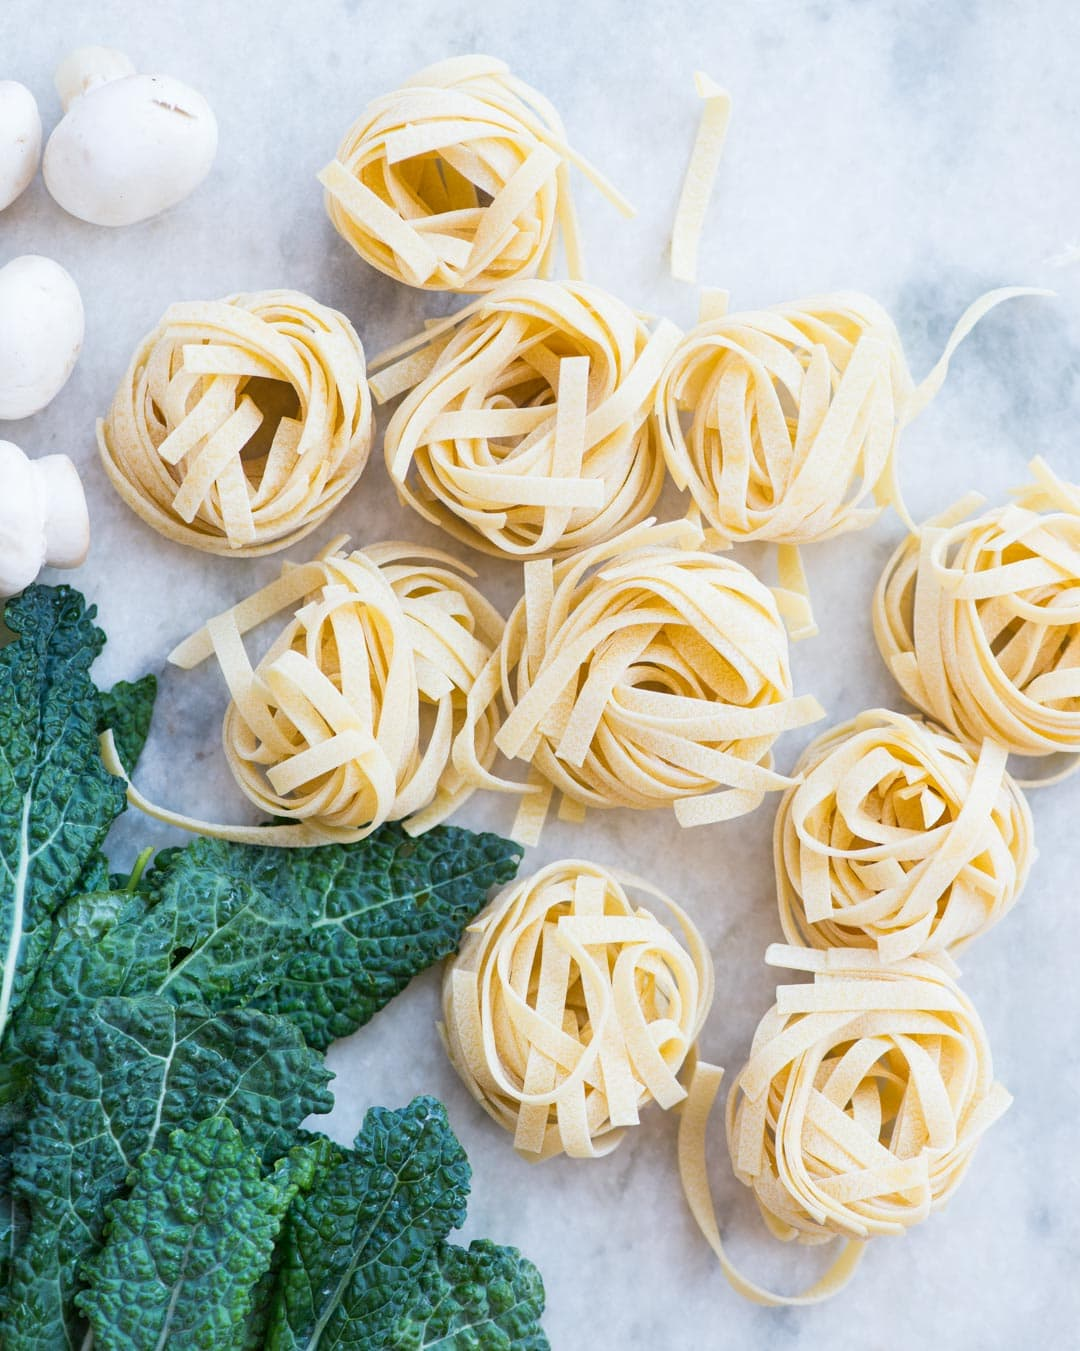 Lemon Garlic Kale Pasta. Pasta, Kale, Mushroom, peas tossed in a buttery lemon garlic sauce and topped with Parmesan. This one-pan delicious dinner is easy and quick to make